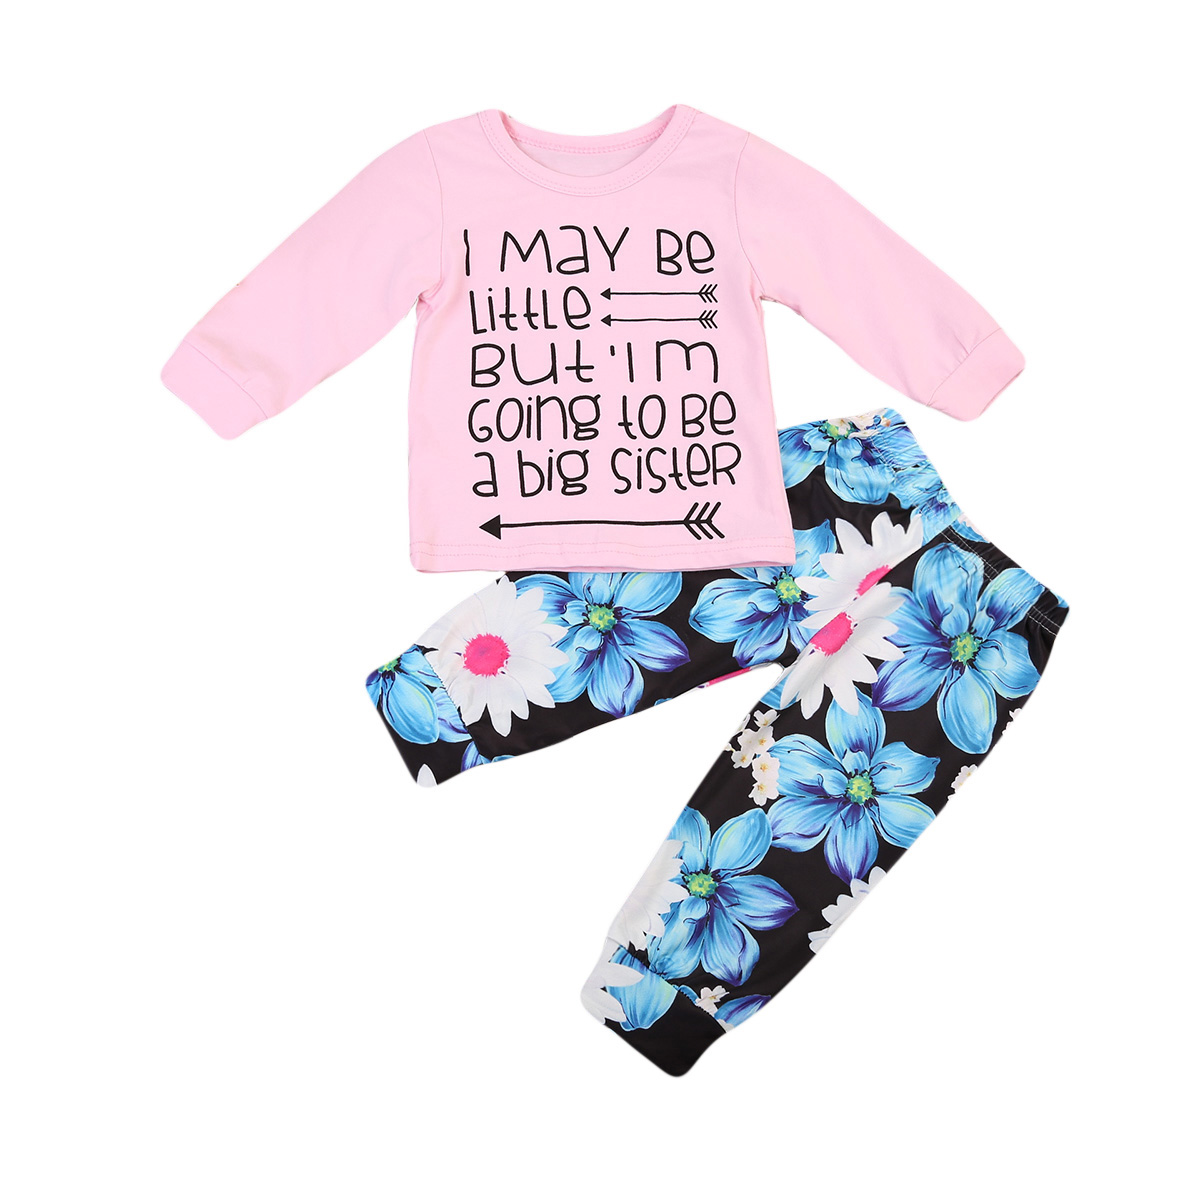 Newborn Toddler Kids Baby Girls Clothes Long Sleeve Letter Prined T Shirt Tops+Flowers Pants Outfits Set